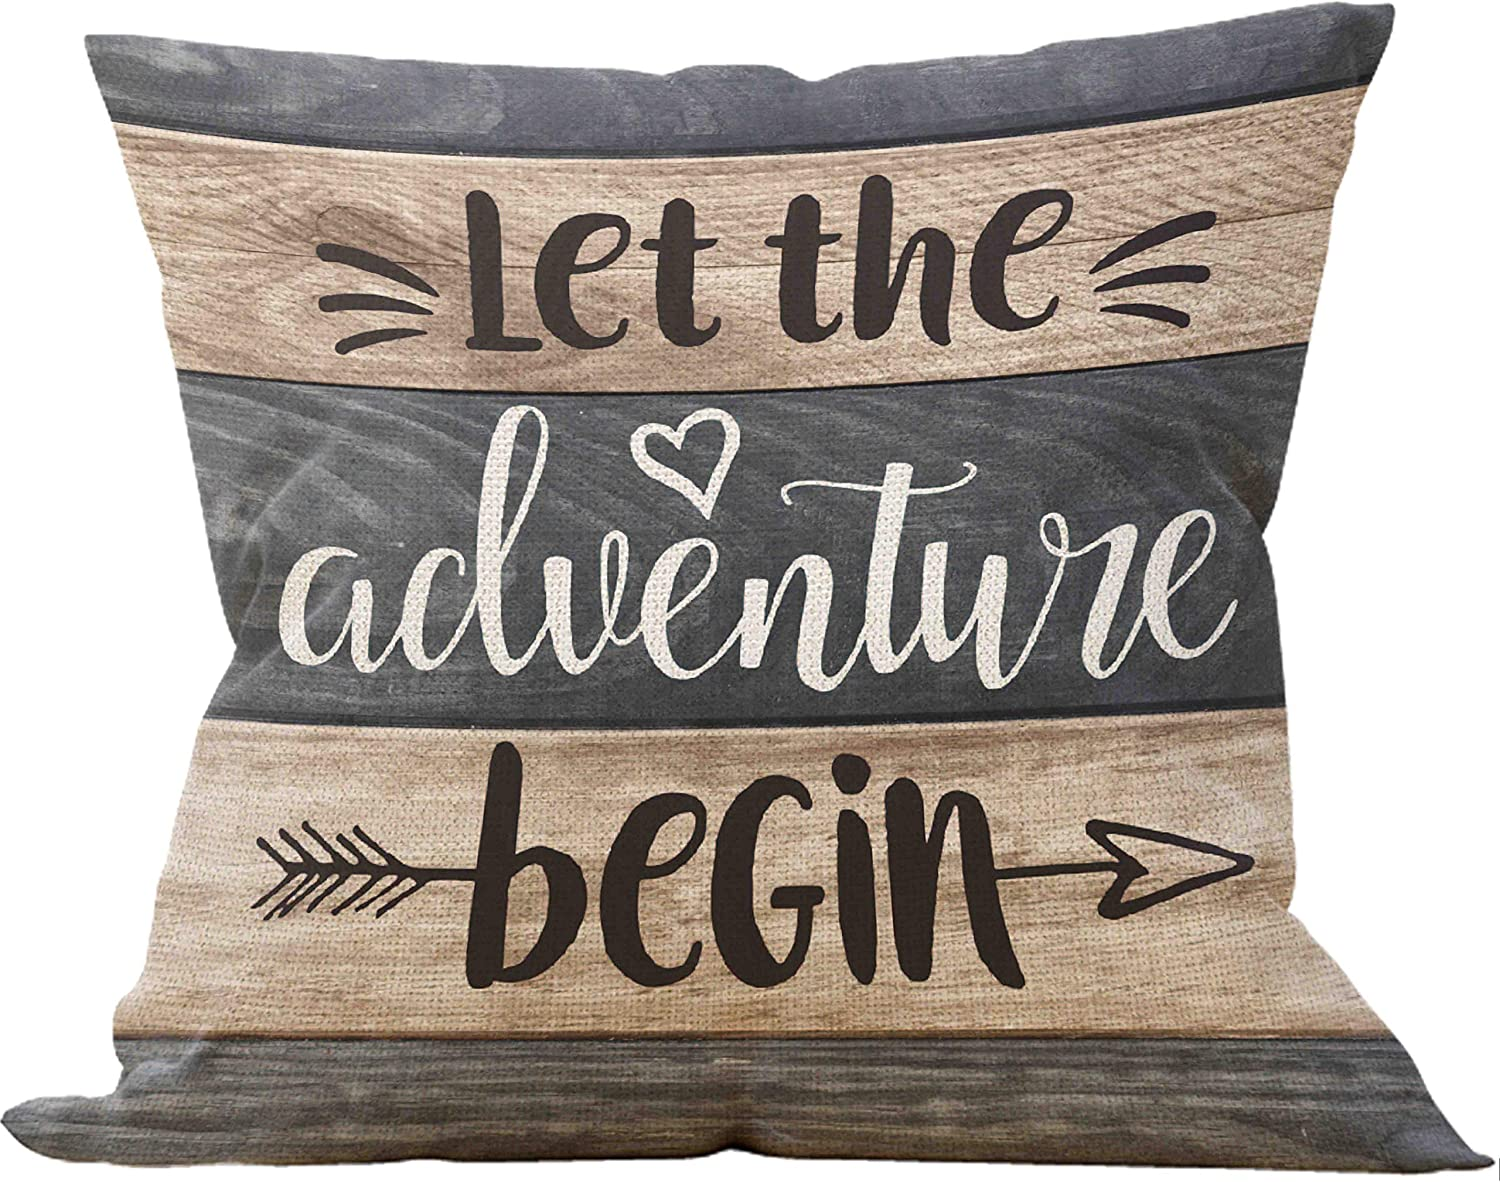 Let The Adventure Begin Pillow Case, Camper Lover Gifts, Gift For Camper, RV pillow Case, Camper Decor, 18 x 18 Inch Trailer Pillow Decorative Cotton Linen Cushion Cover for Sofa Couch Bed RV